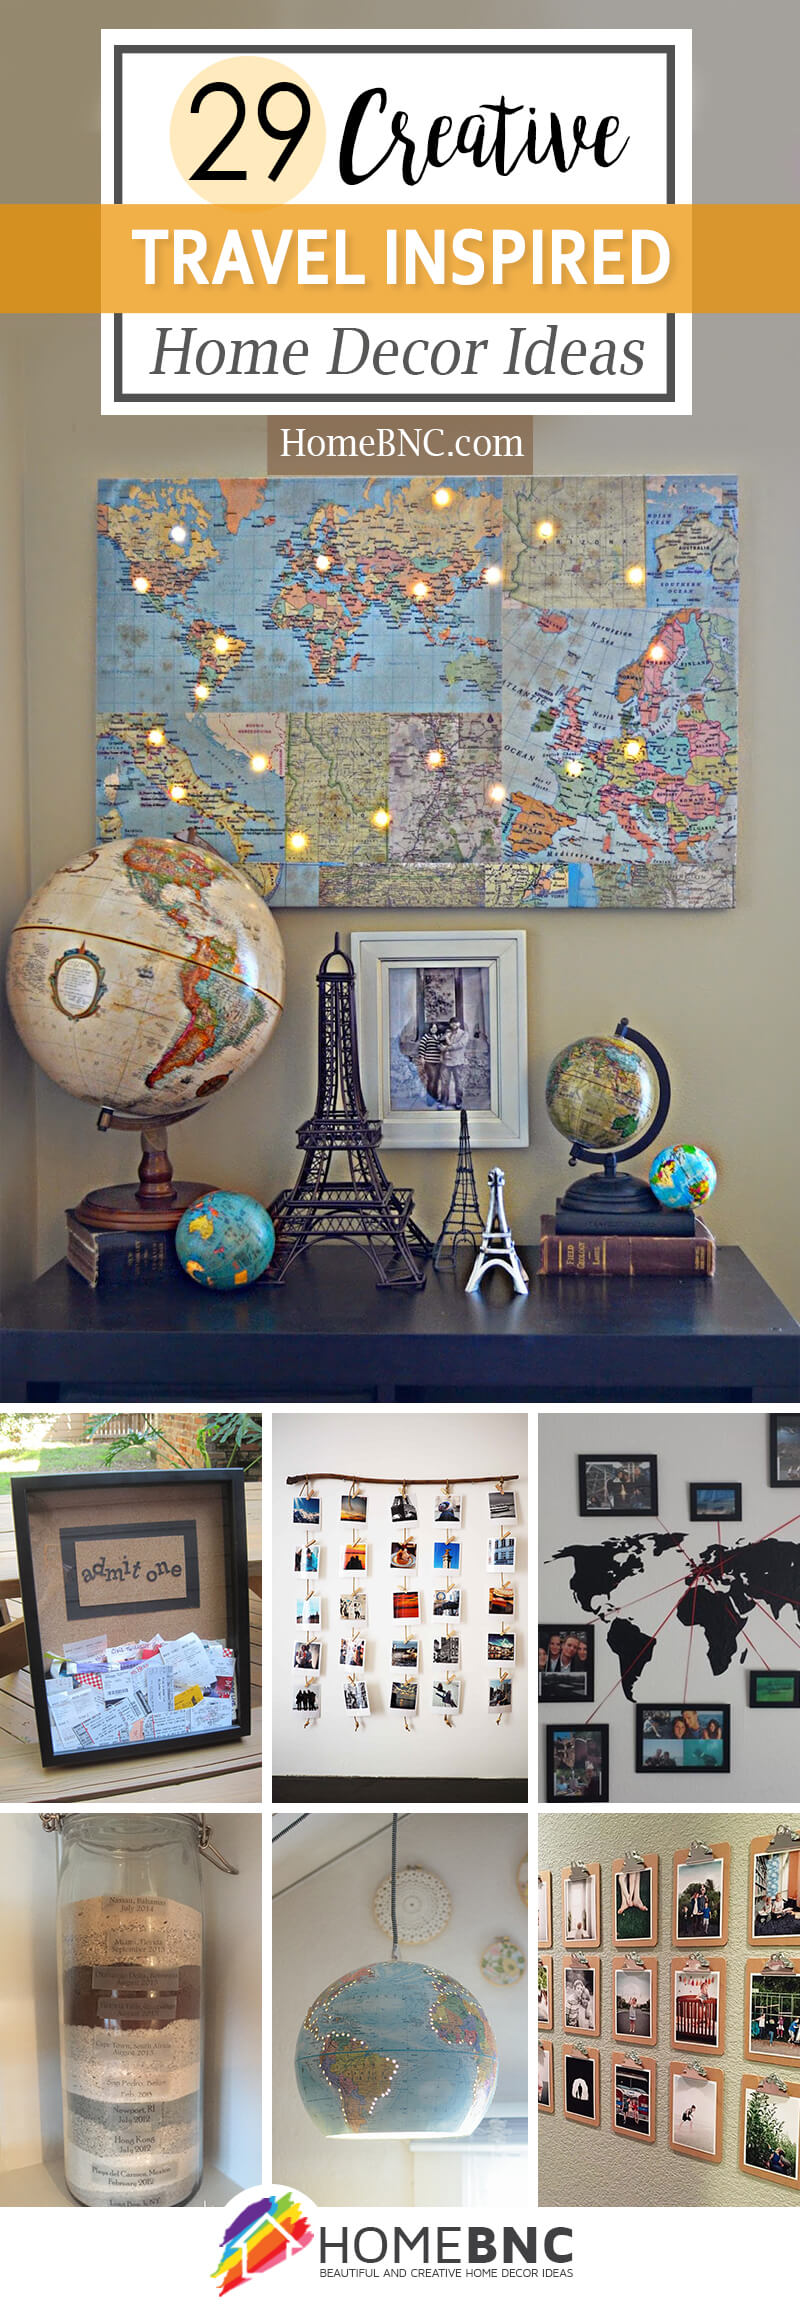 7 Best Travel Inspired Home Decor Ideas and Designs for 7